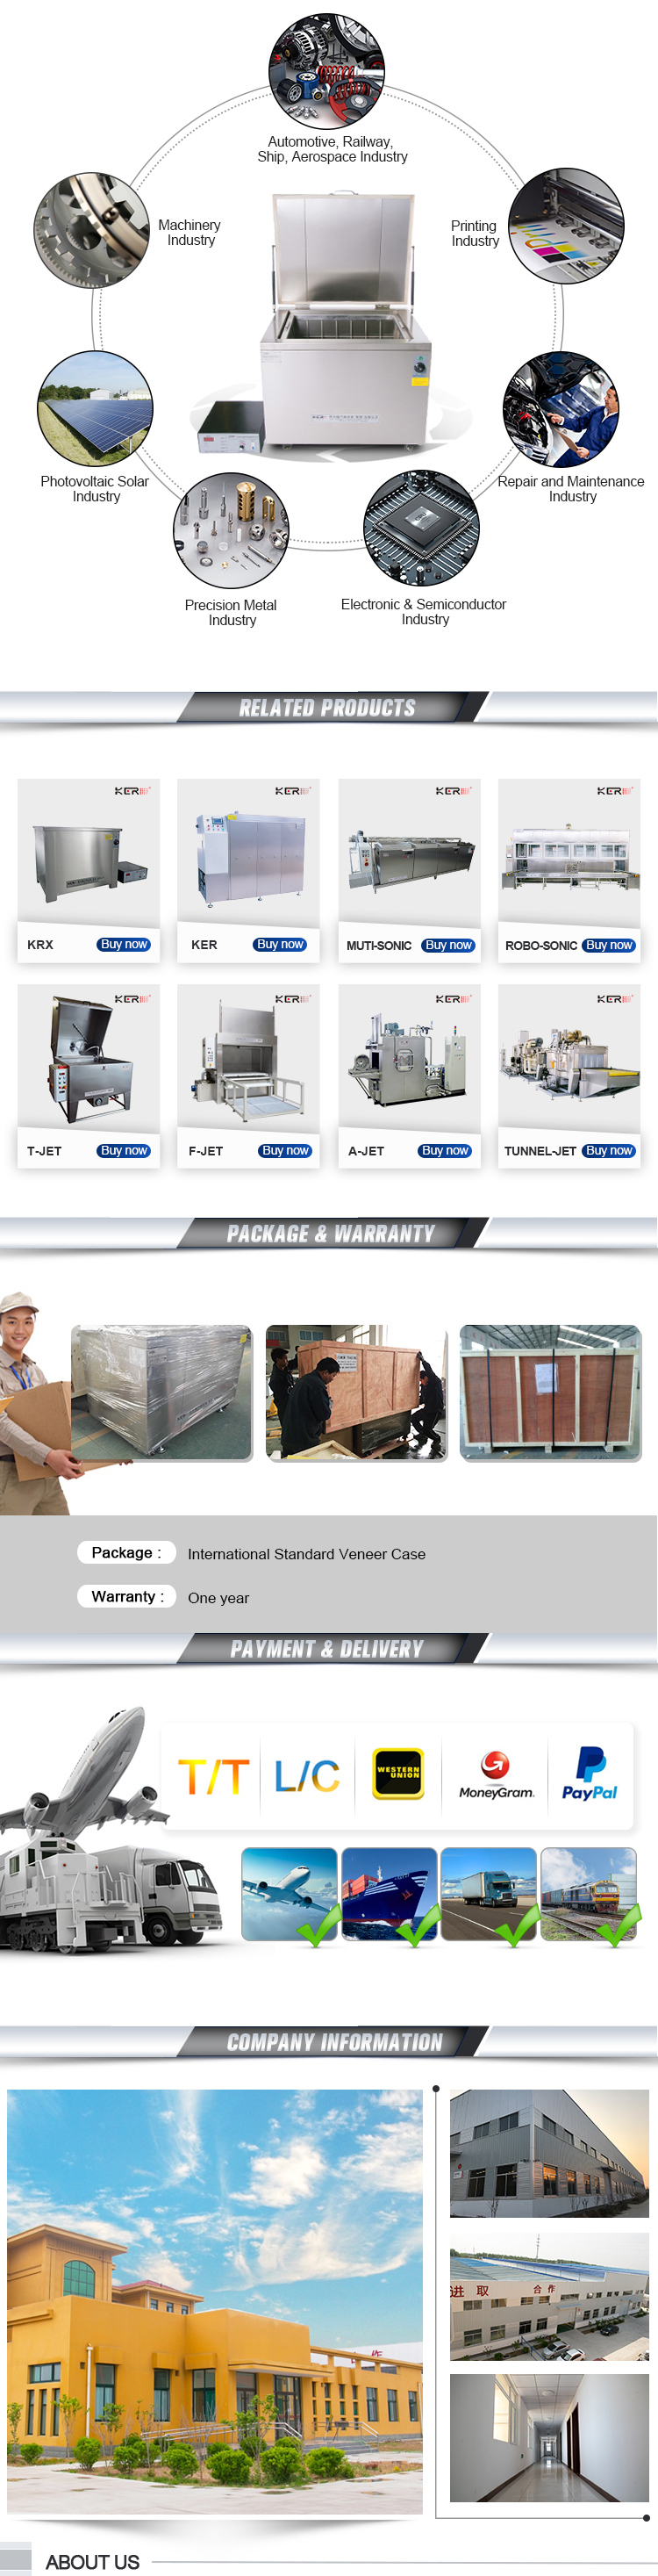 Heated Industrial Ultrasonic Degreaser for Parts Cleaning Washing